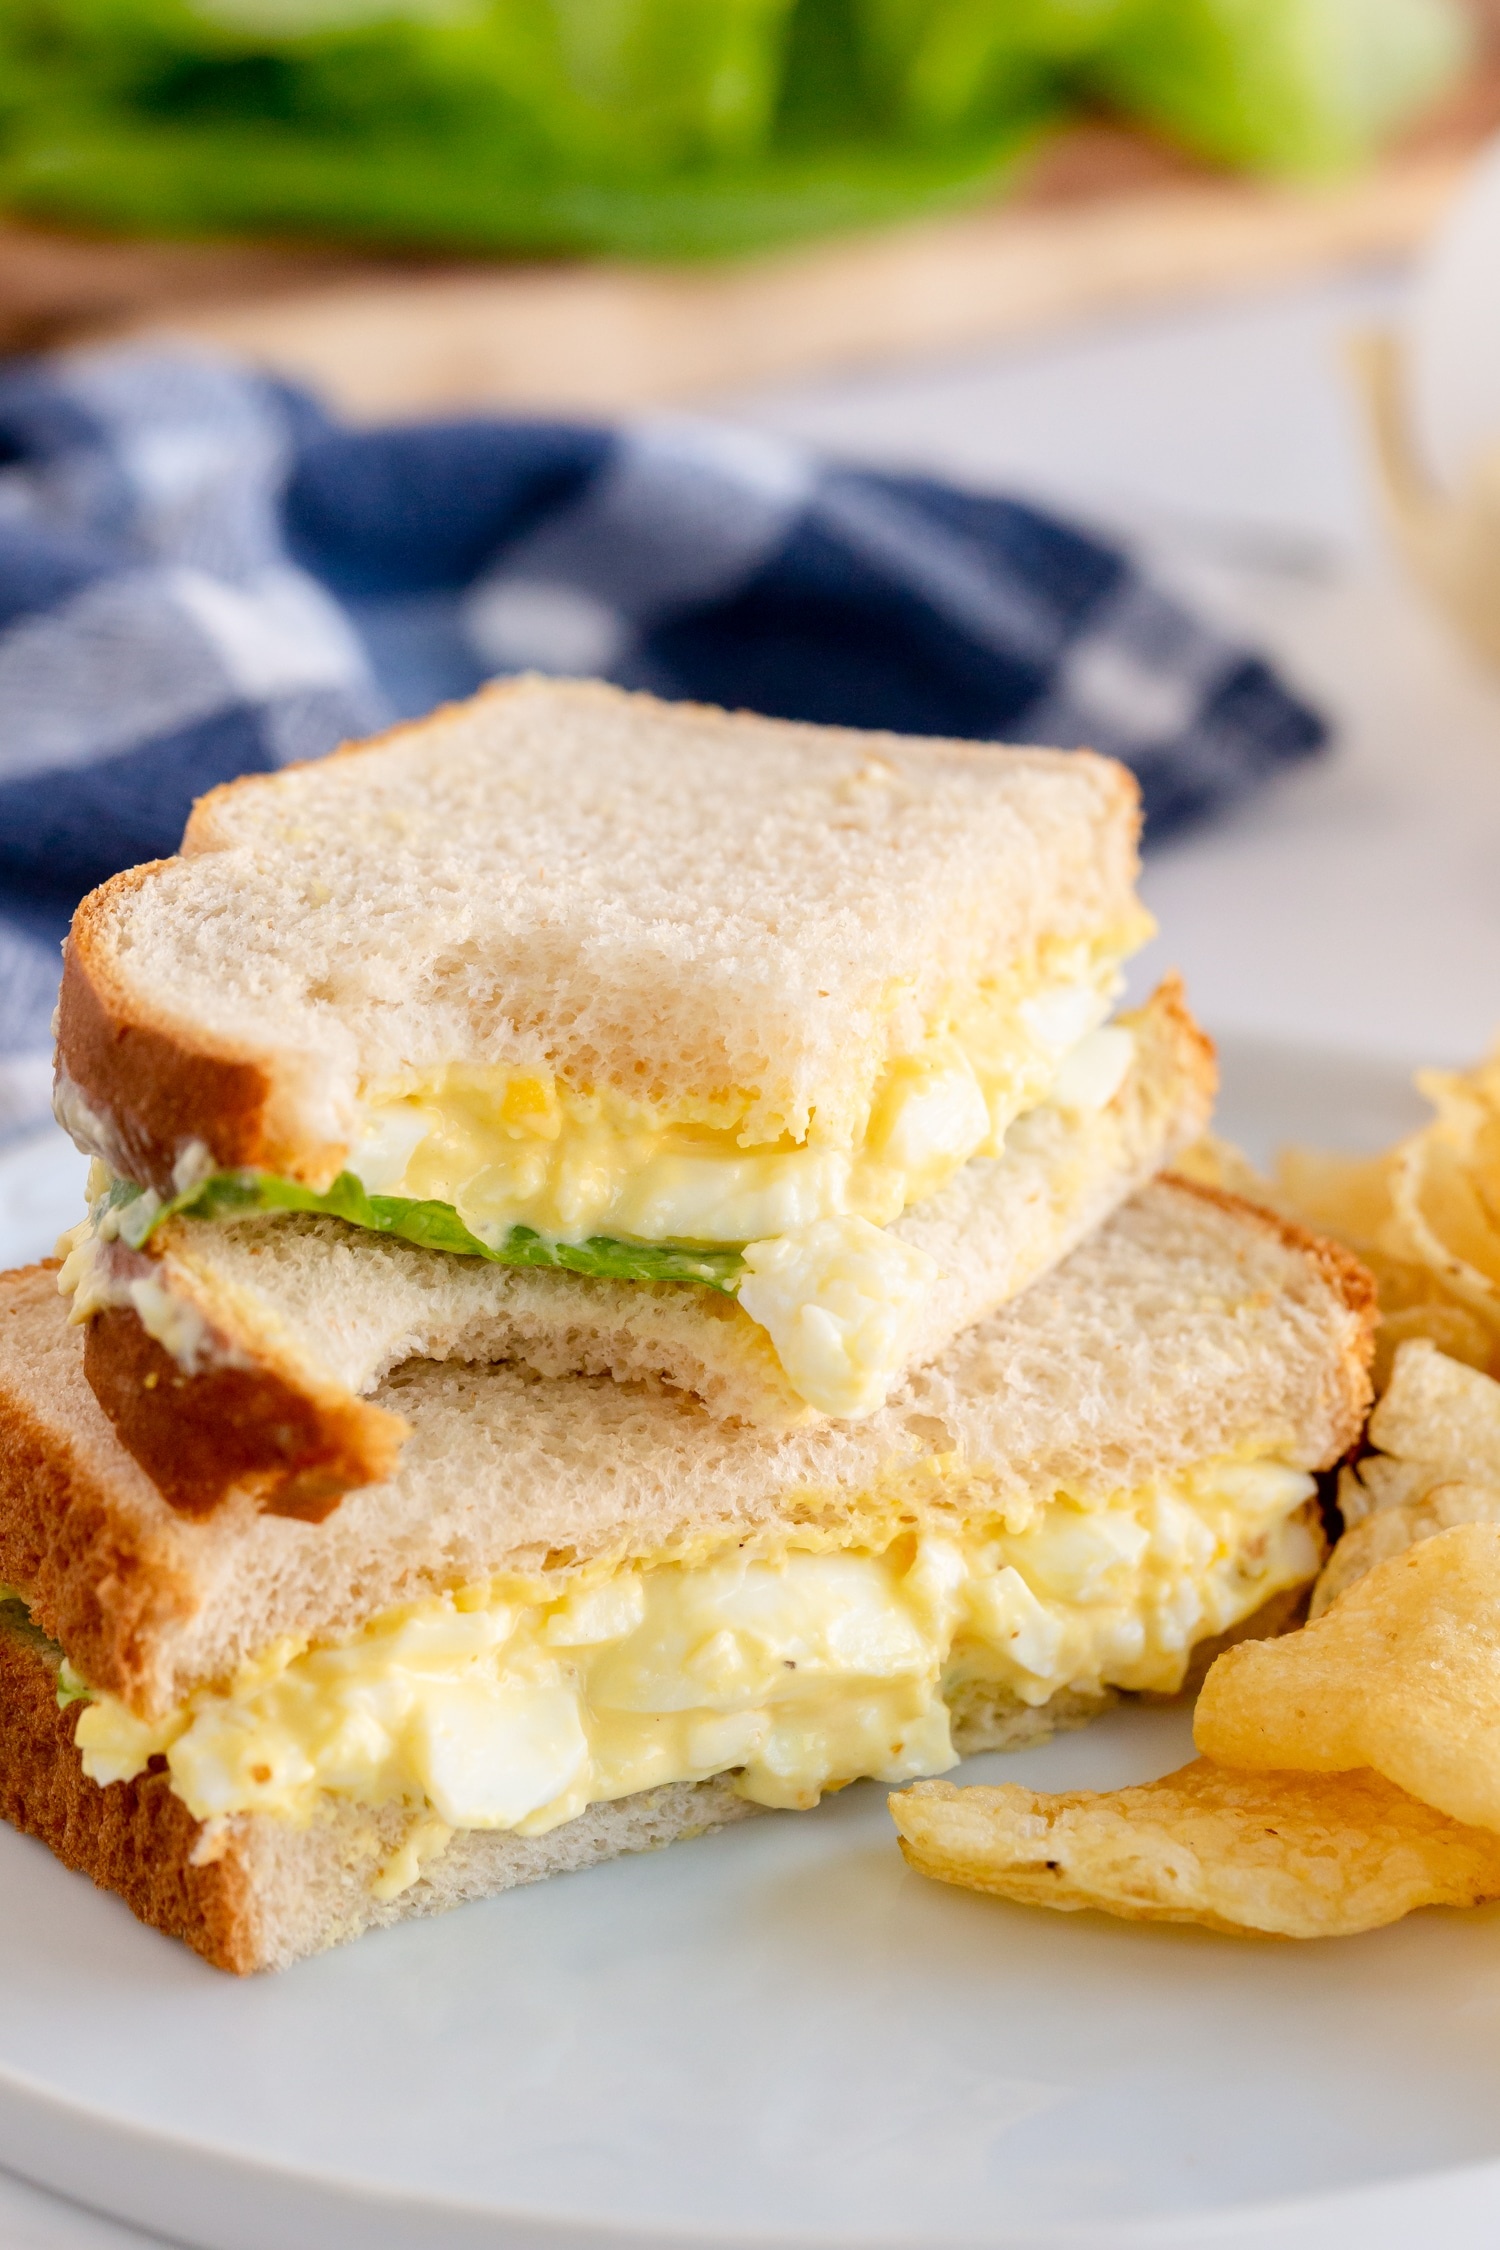 This Egg Salad Sandwich Recipe is an easy, delicious and easy to customize sandwich the family will enjoy!